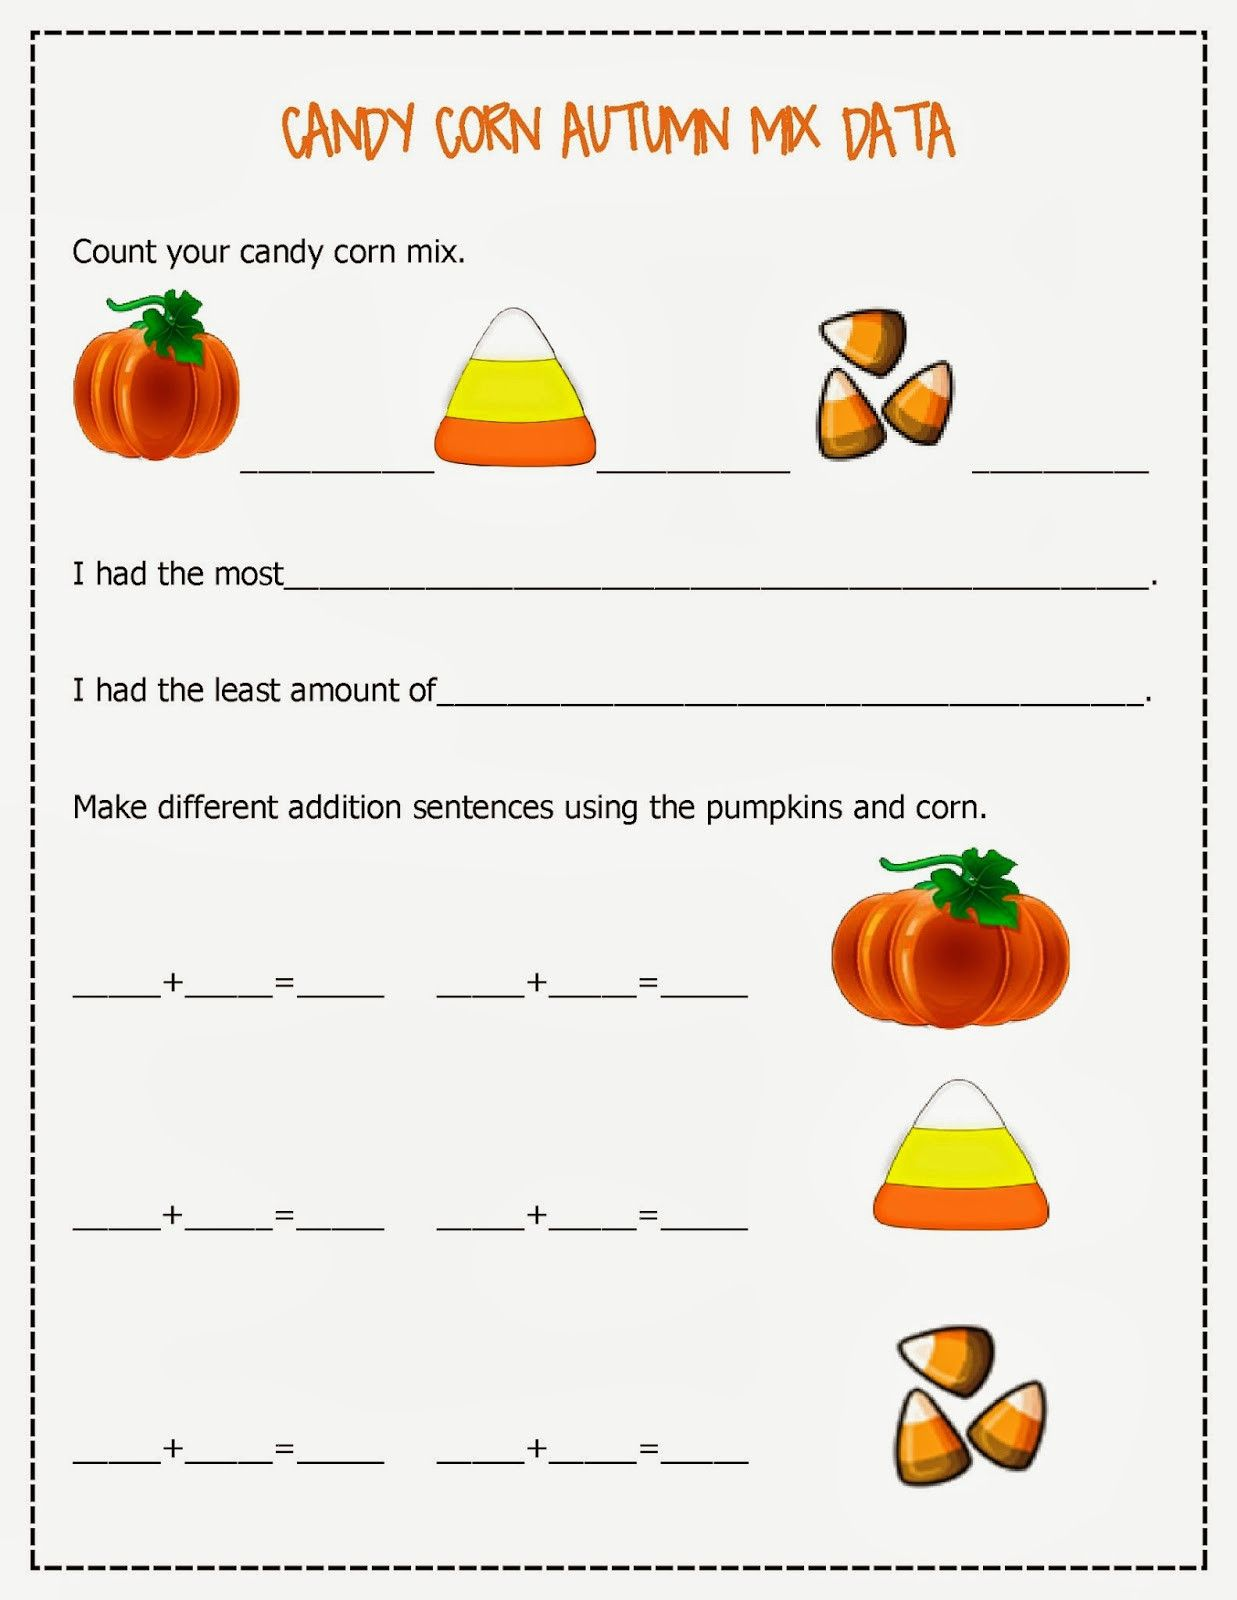 4 Free Math Worksheets First Grade 1 Addition Pictures Objects Full Candy Corn Autumn Mix Fre Free Math Worksheets Free Math Math Worksheets